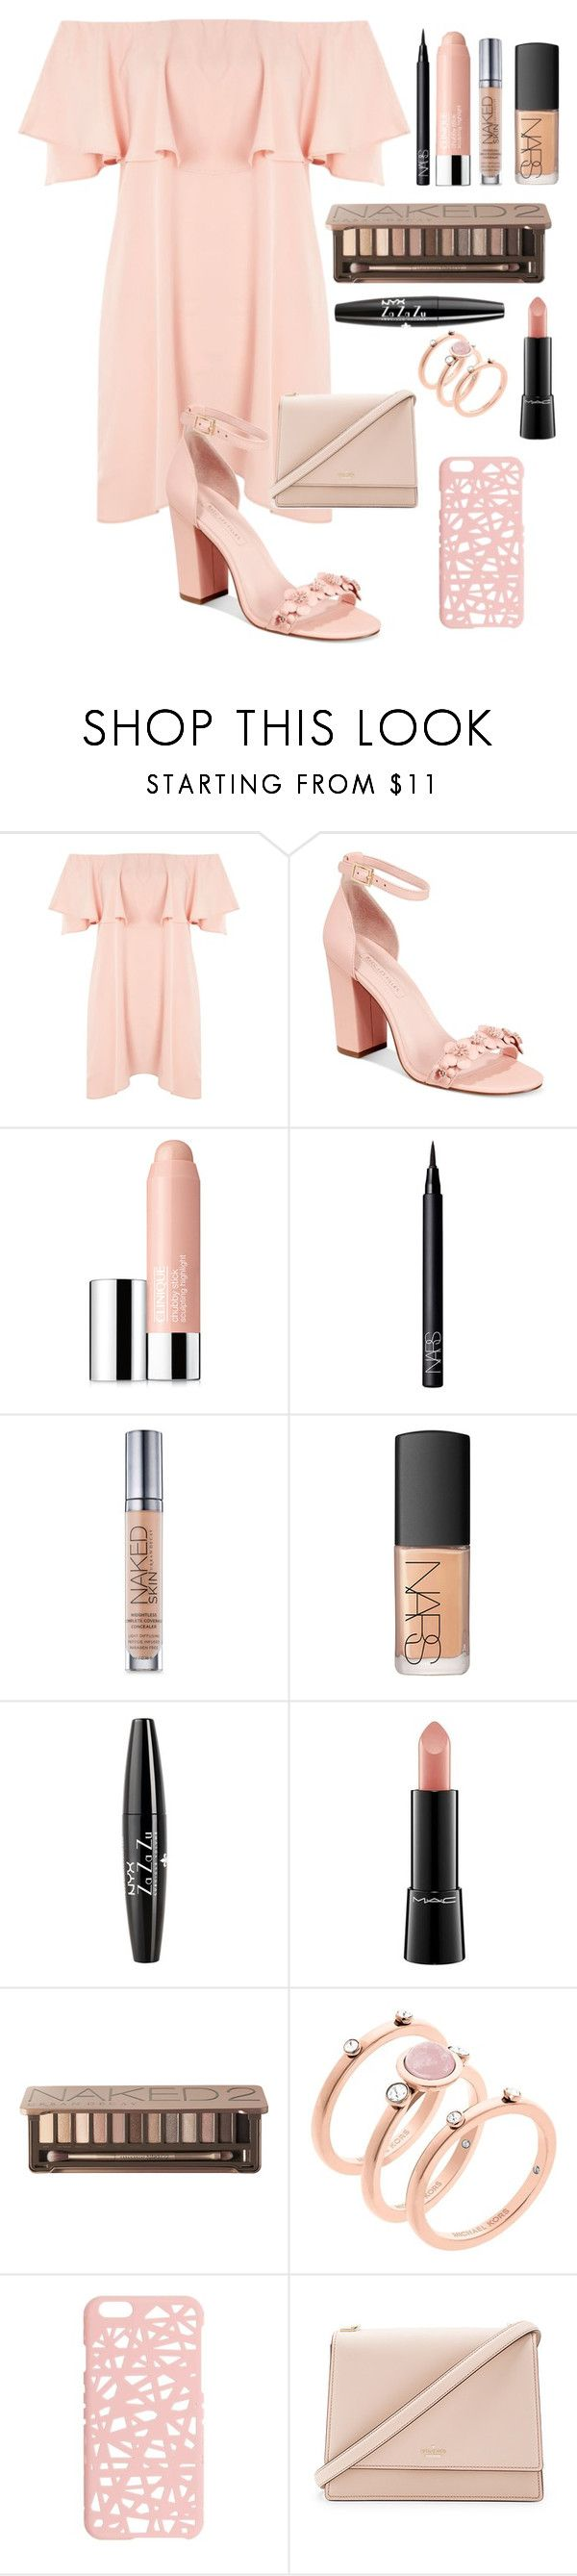 """""""Perfect Pink!"""" by simpli-chic-fashion ❤ liked on Polyvore featuring Topshop, Avec Les Filles, Clinique, NARS Cosmetics, Urban Decay, NYX, MAC Cosmetics, Michael Kors, Miss Selfridge and Kate Spade"""